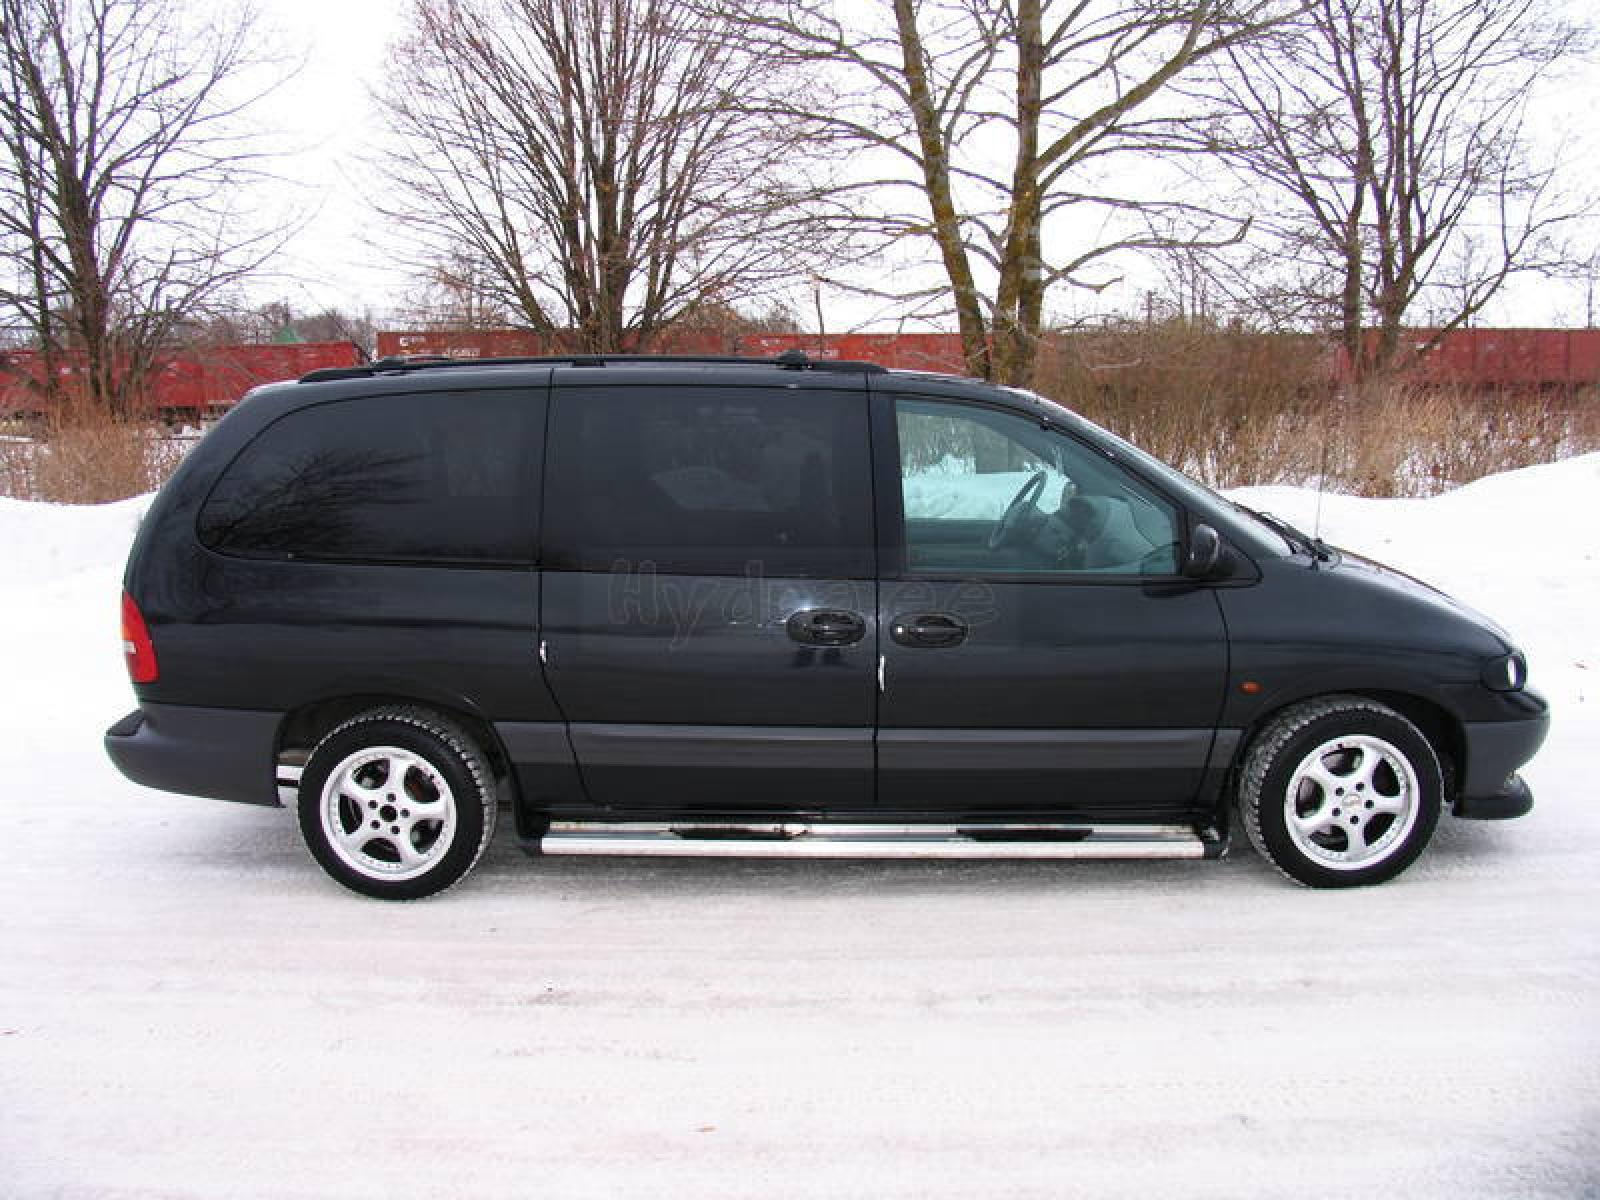 2000 Chrysler Grand Voyager Information And Photos